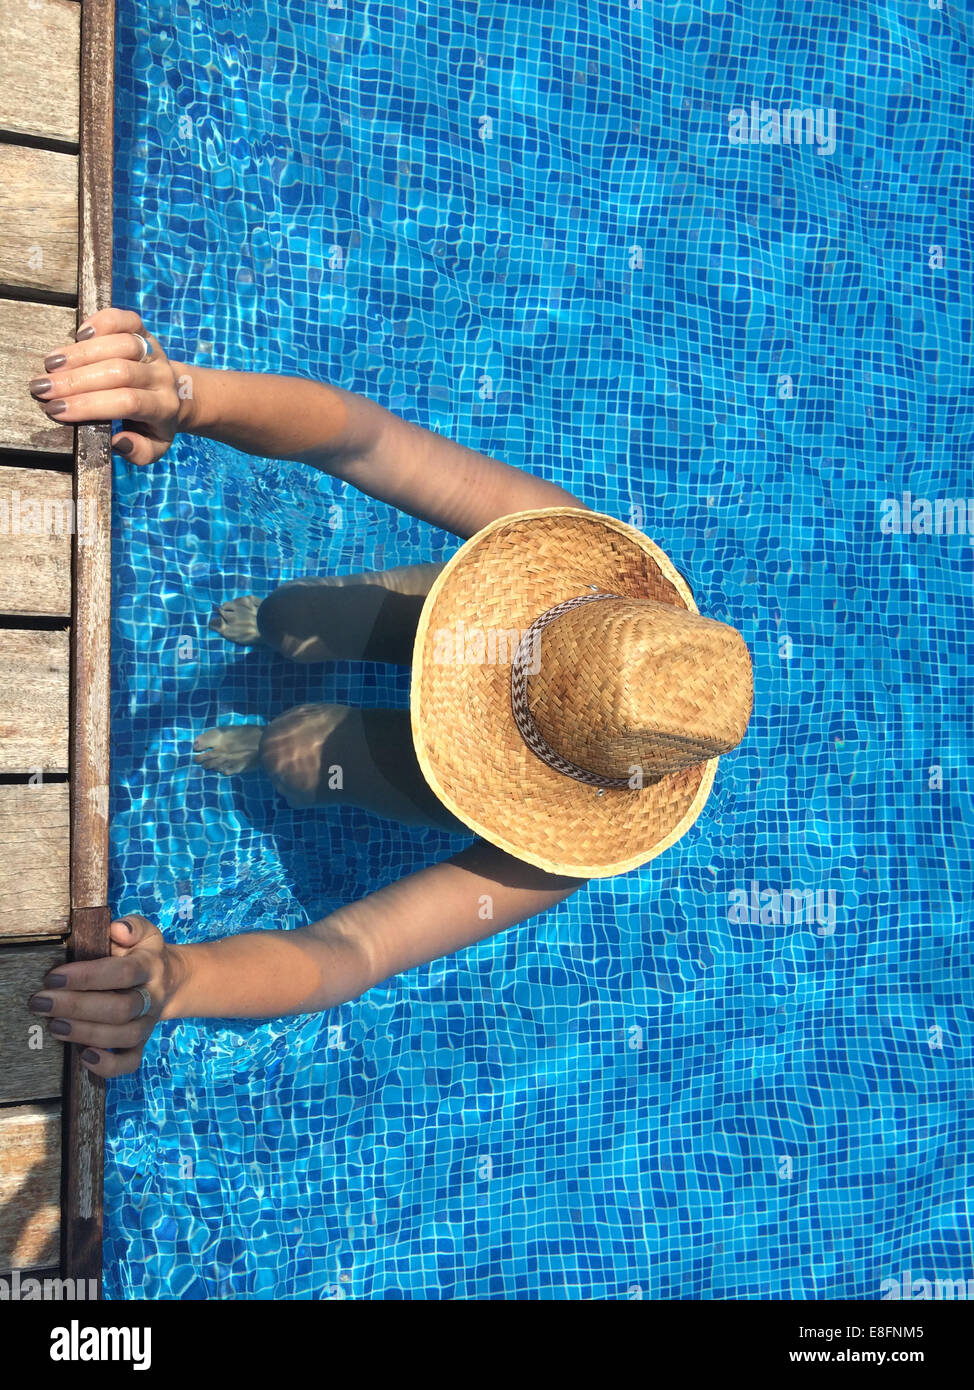 Woman exercising in swimming pool Photo Stock